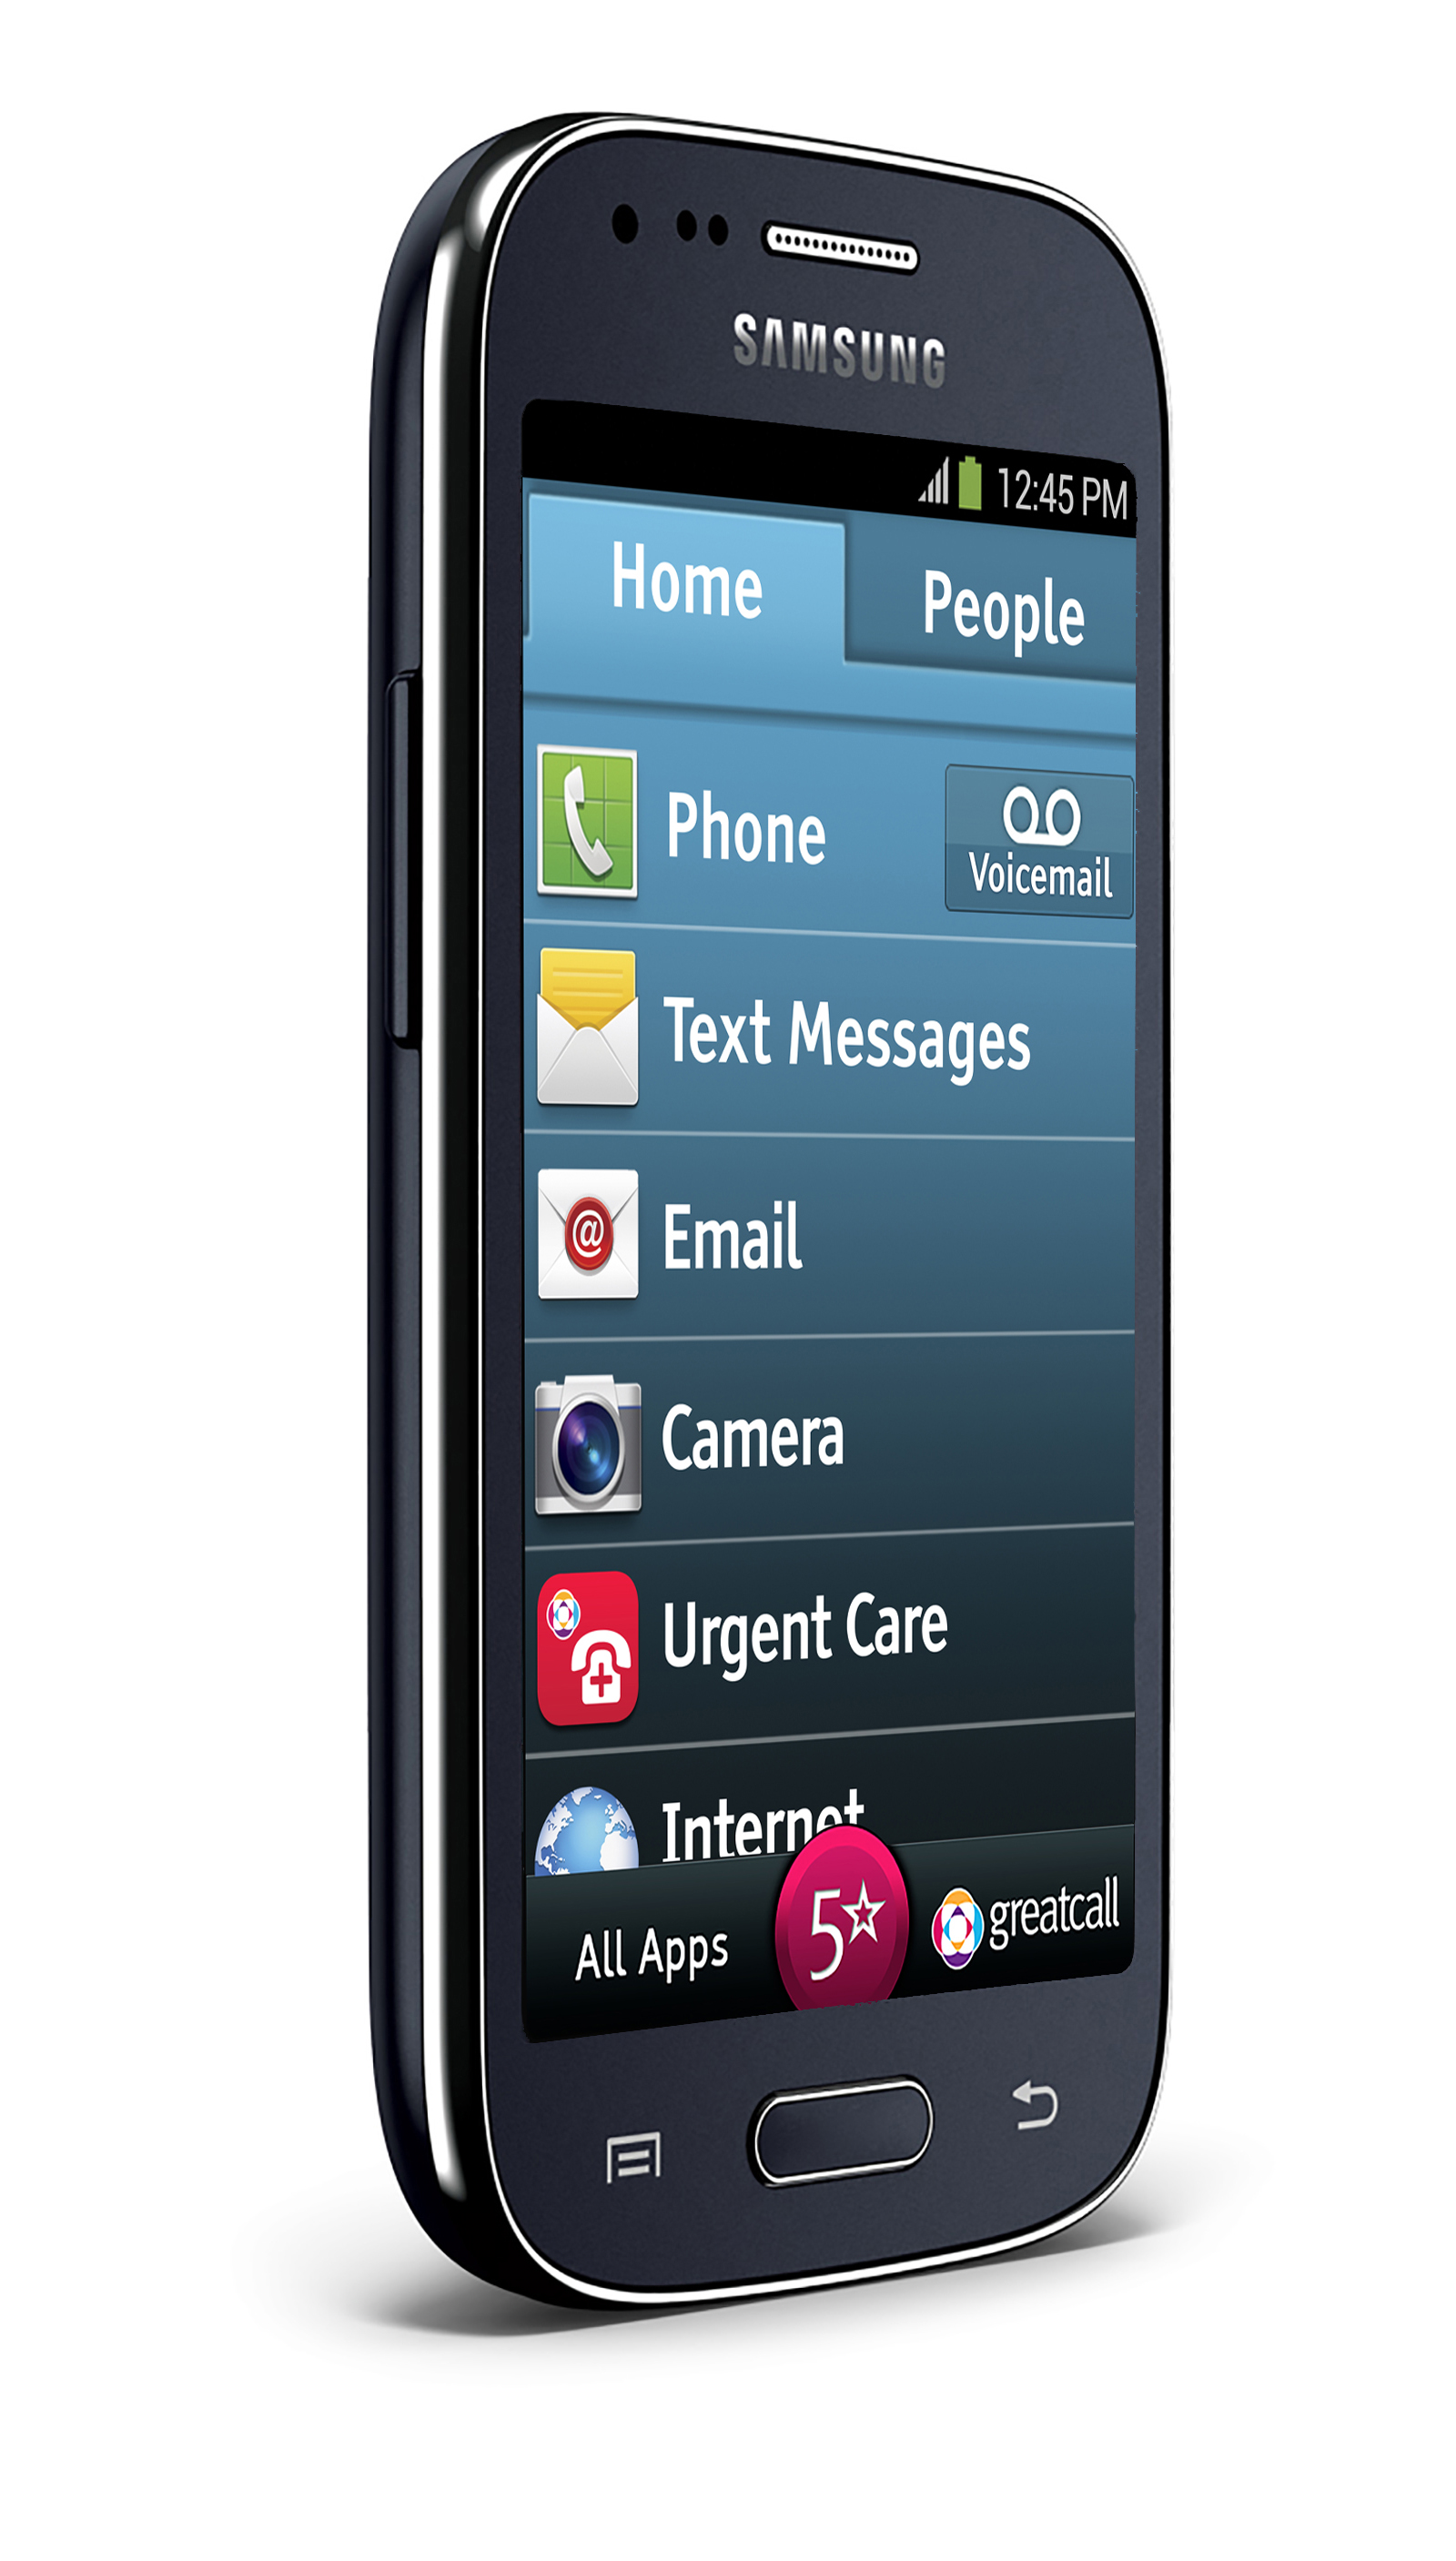 Greatcall Touch 3 - Gray (Samsung)